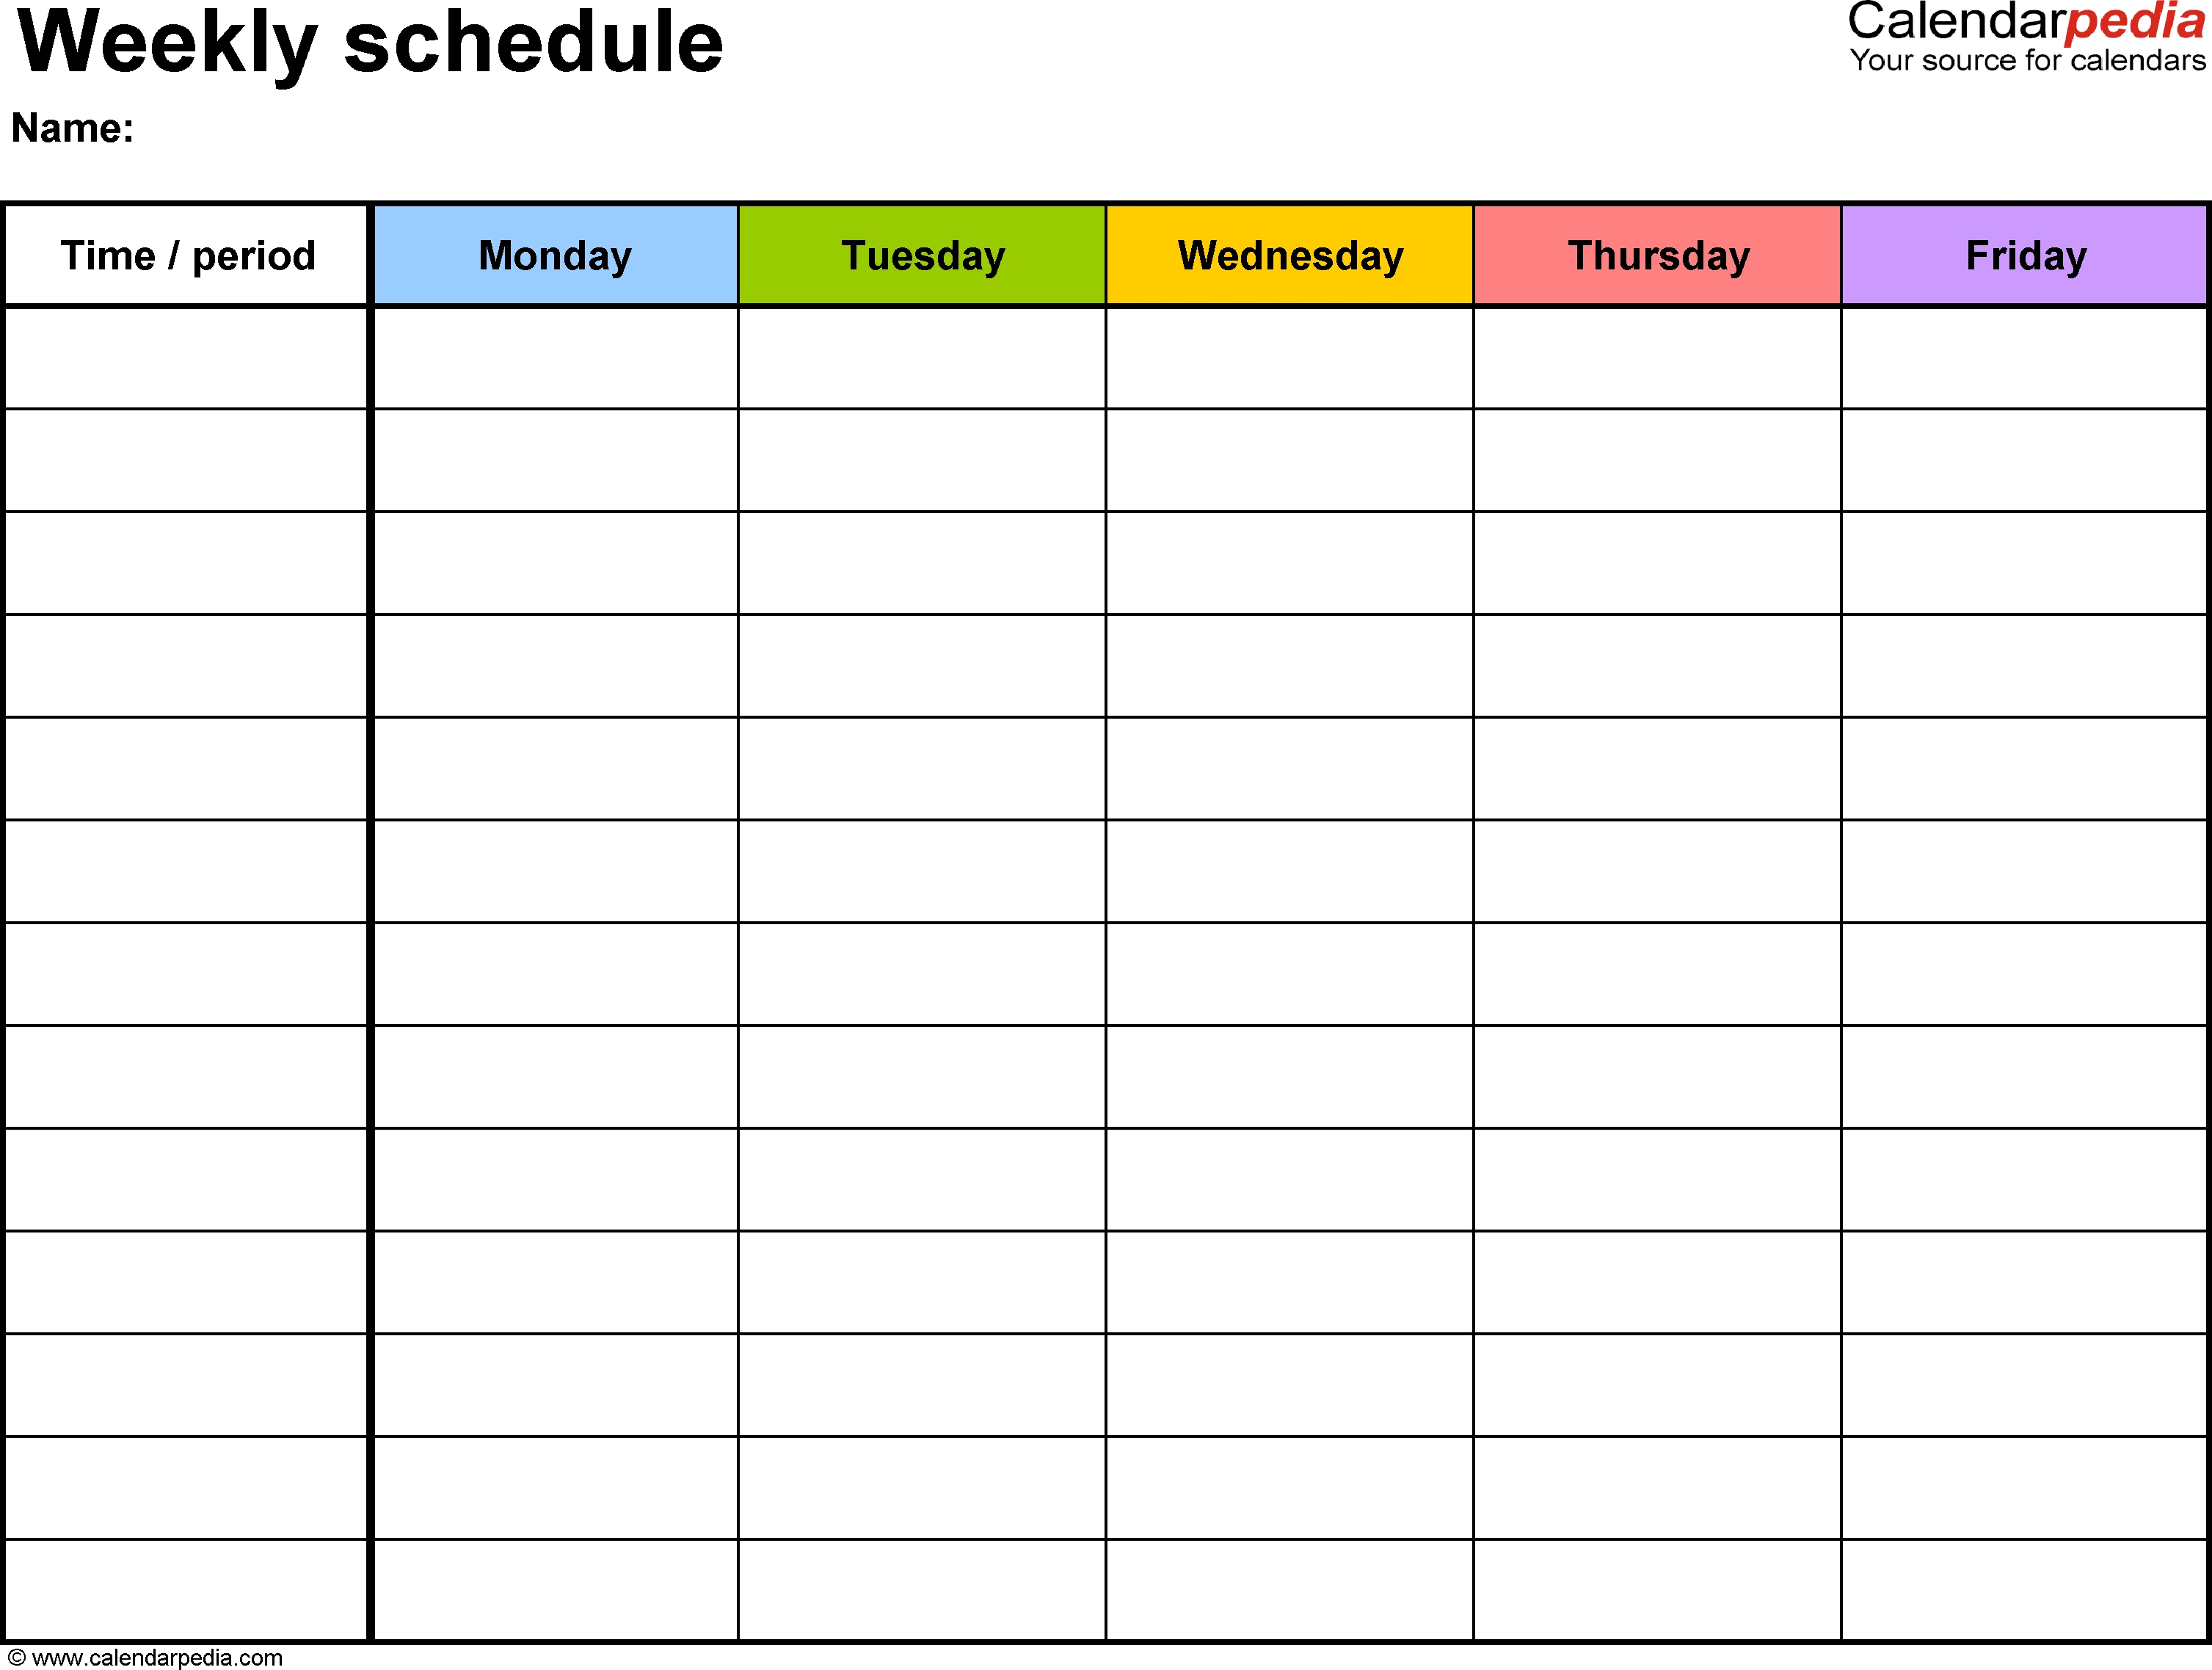 Free Weekly Schedule Templates For Word - 18 Templates A Week Calendar Template